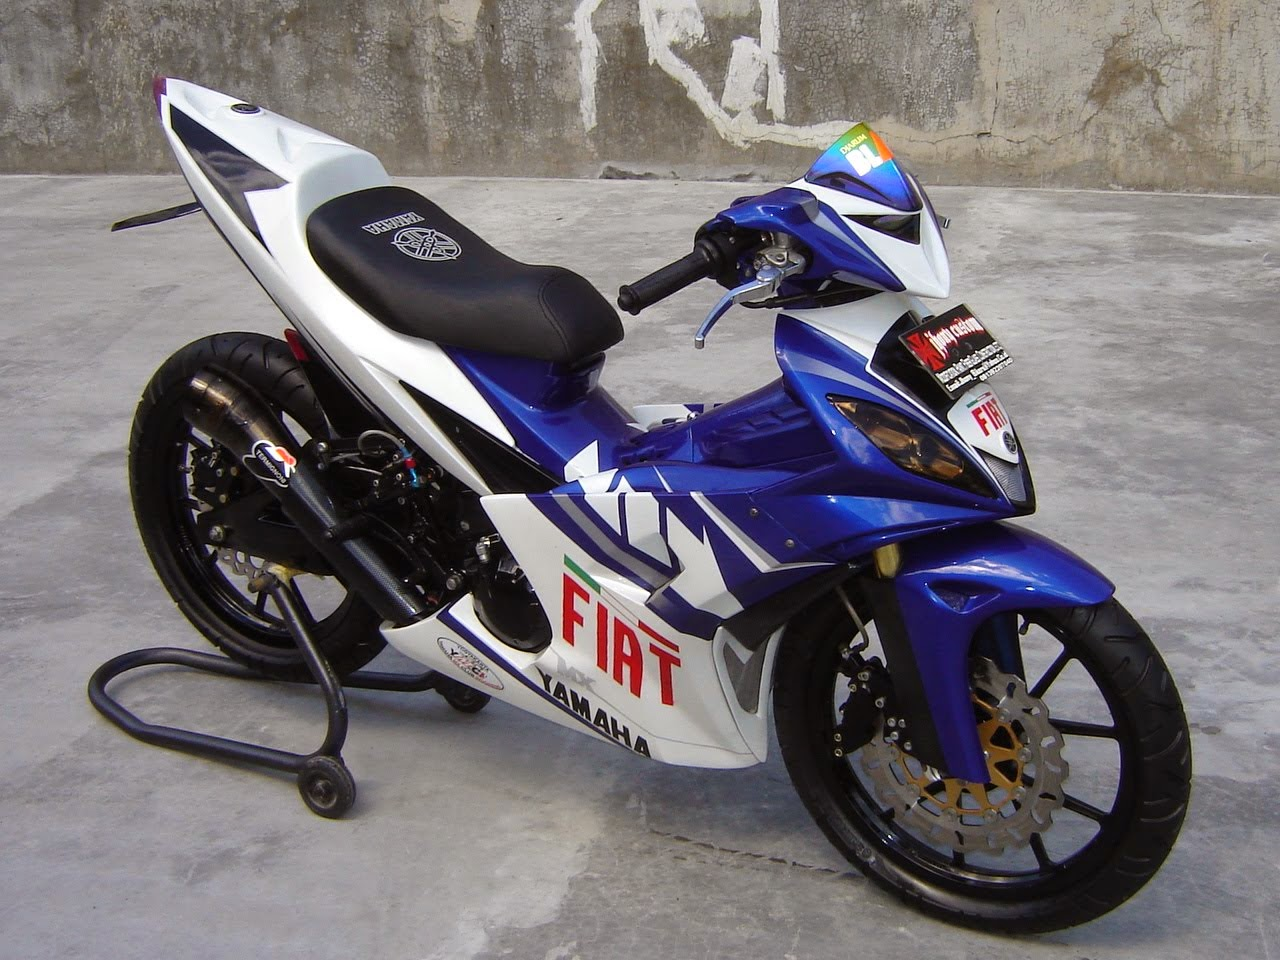 Supra X 125 Modifikasi Warna Hitam